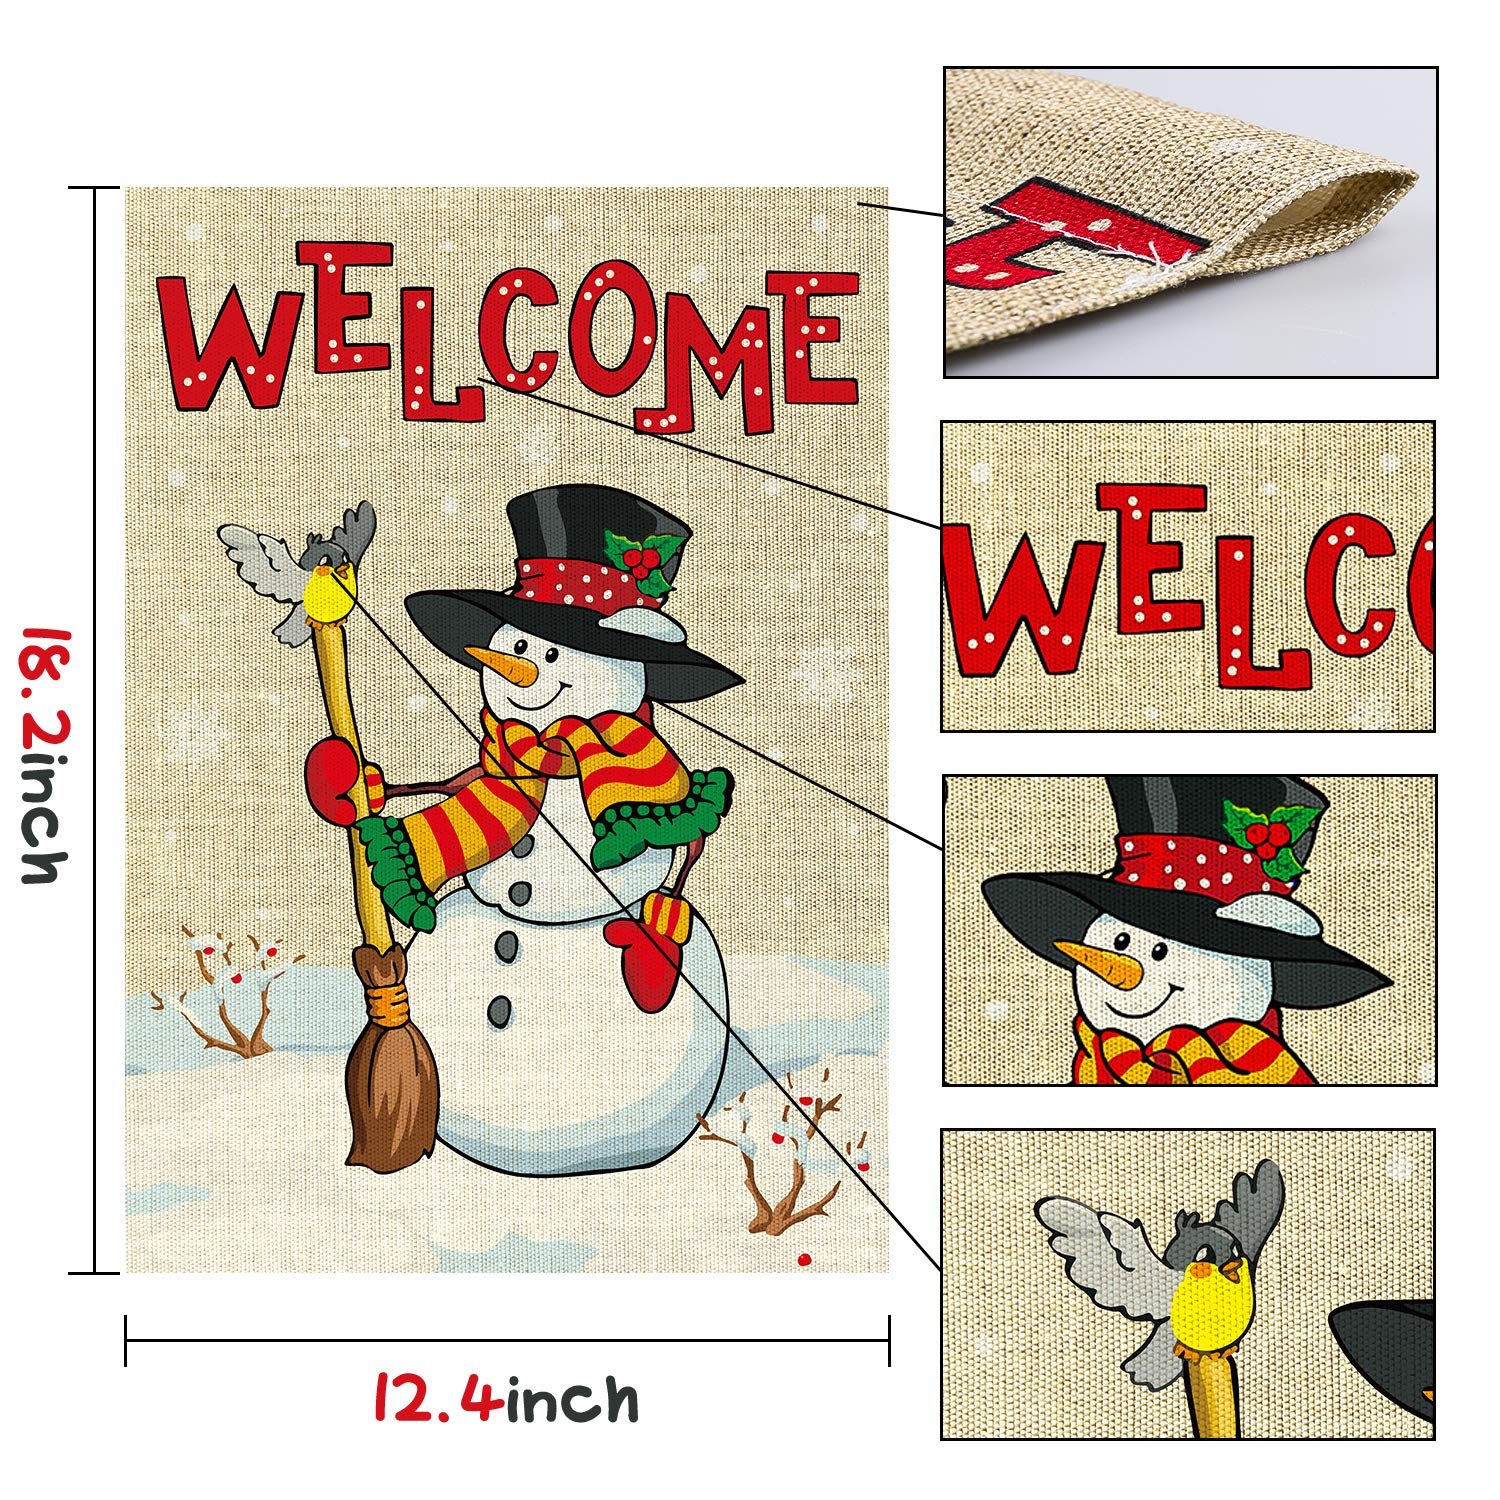 WATINC 2Pcs Welcome Happy Thanksgiving Garden Flag Pumpkins Lovely Turkey Harvest Fall Decorations Double Sided Burlap Autumn House Flags for Home Decor Indoor Outdoor Yard 12.4 x 18.2 Inch